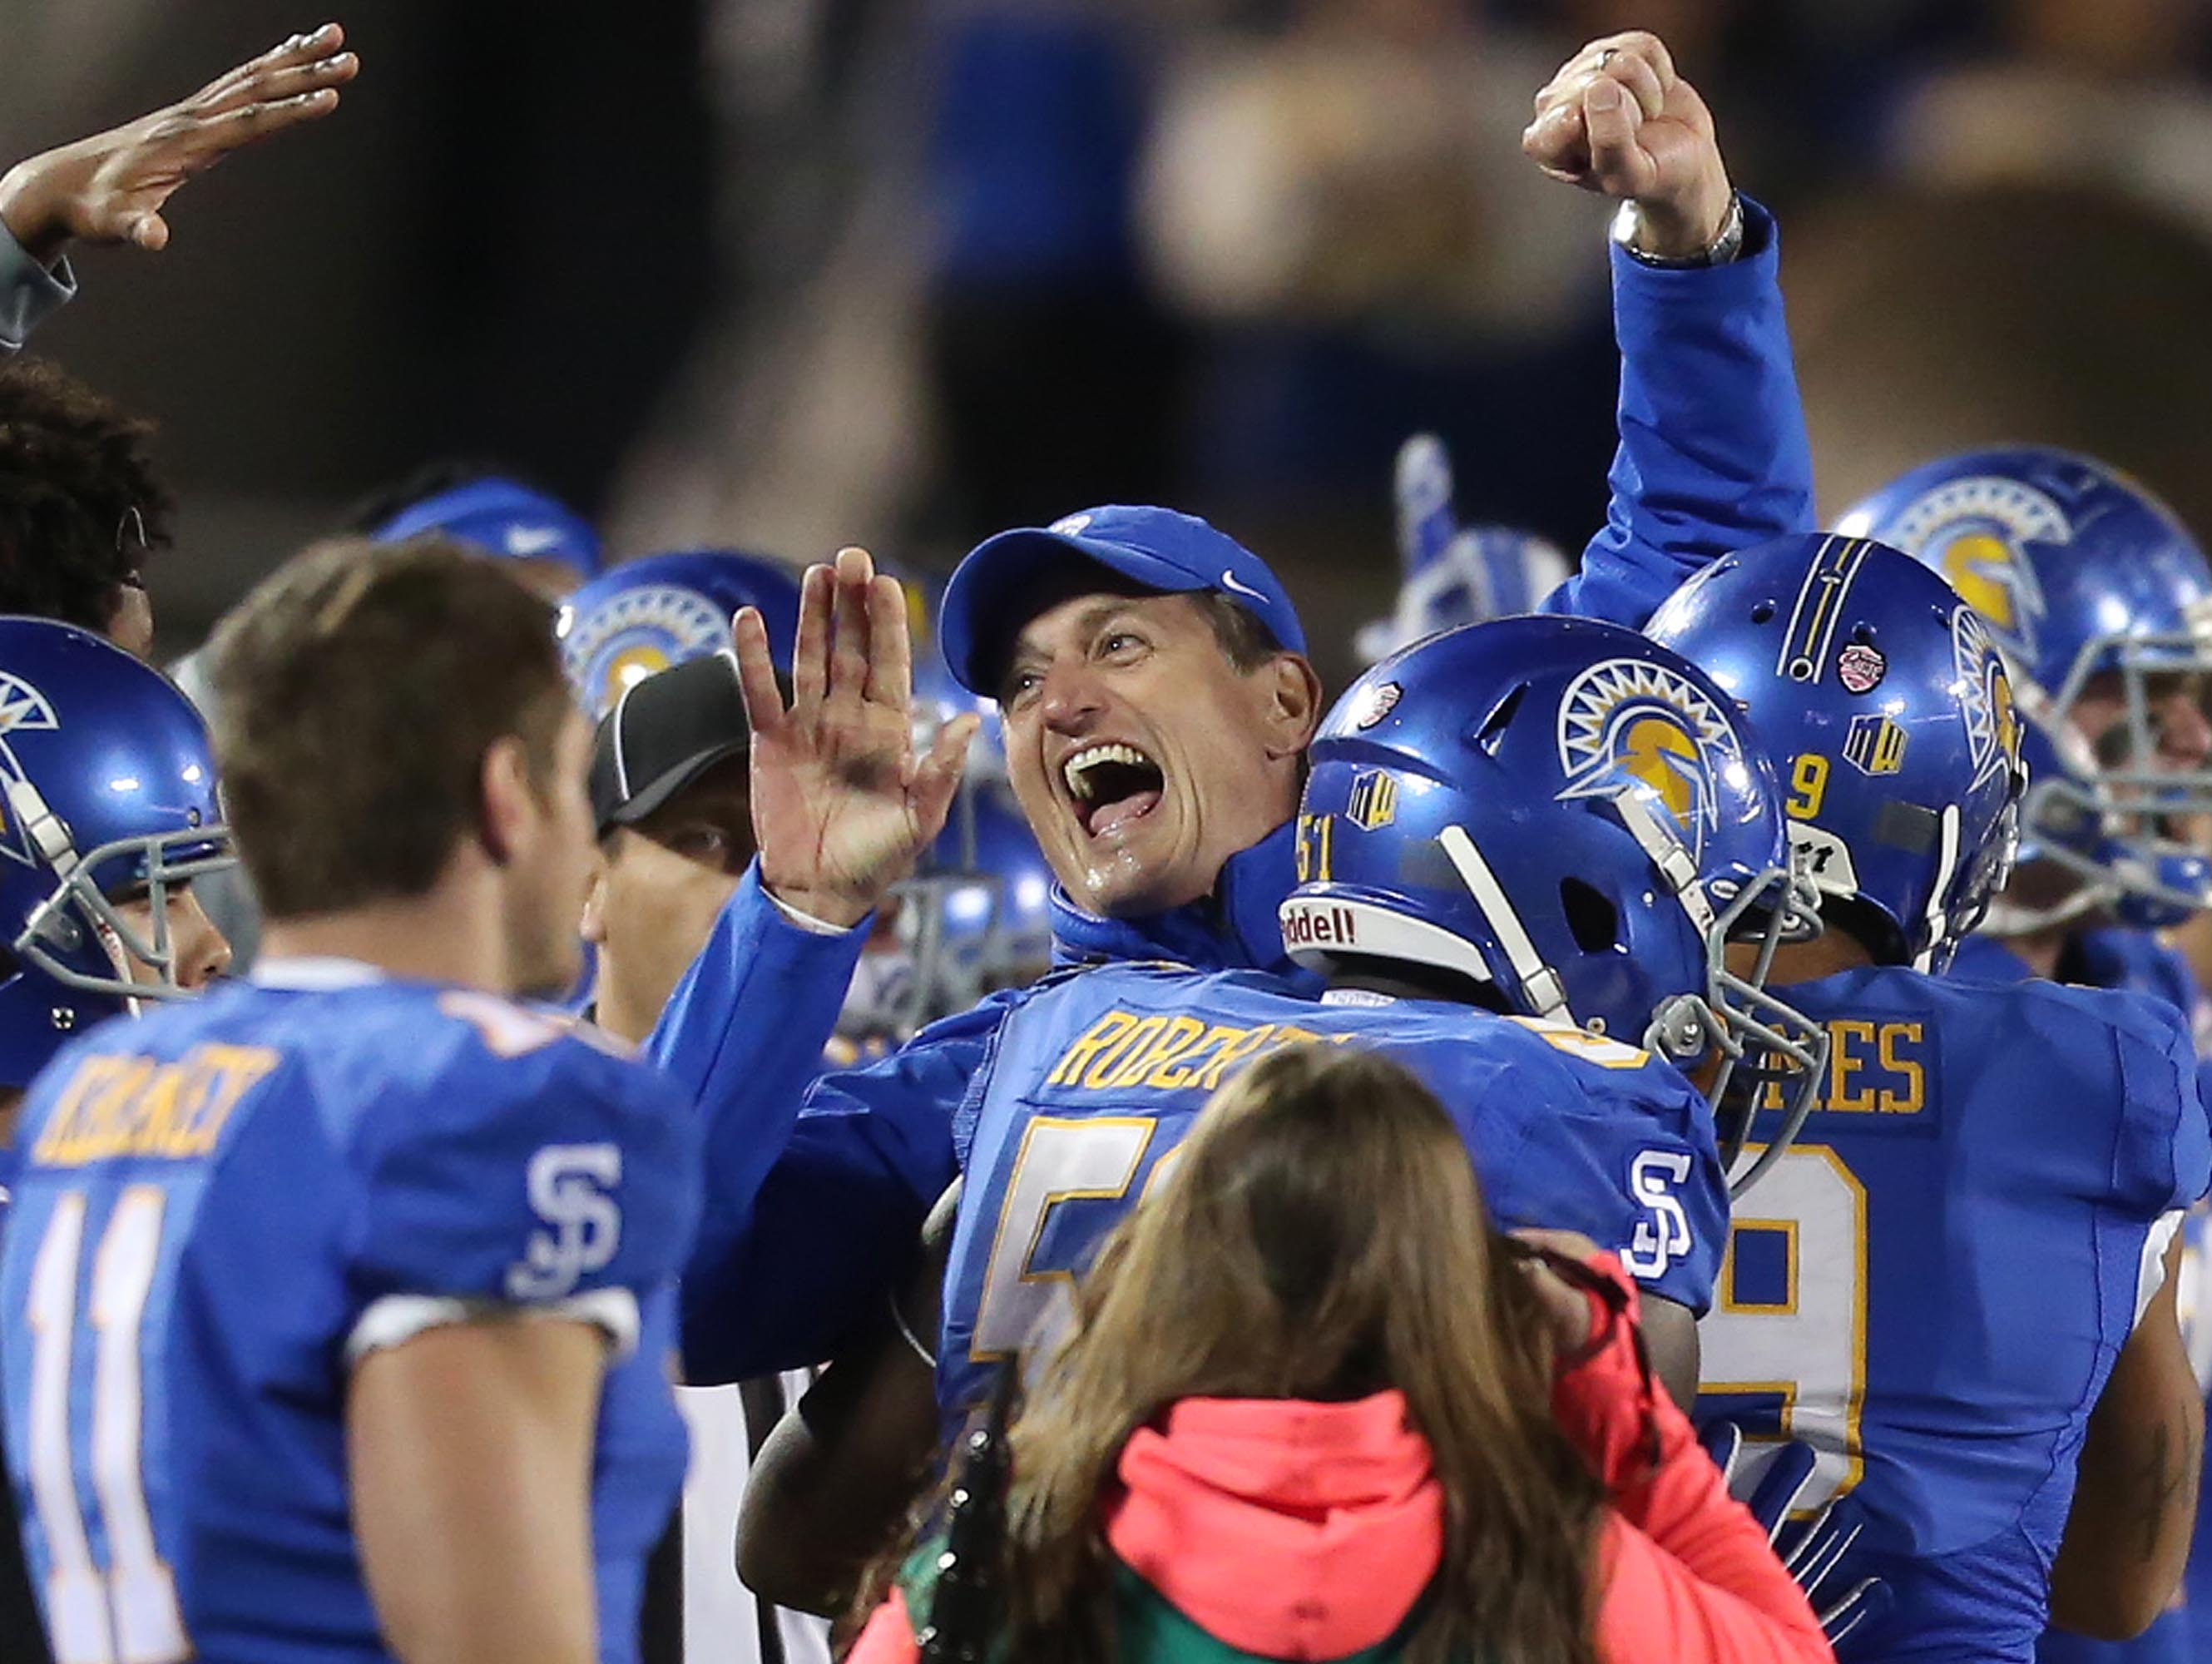 San Jose State head coach Ron Caragher celebrates after defeating Georgia State in the Cure Bowl NCAA college football game, Saturday, Dec. 19, 2015 in Orlando, Fla. (Stephen M. Dowell/Orlando Sentinel via AP) MAGS OUT; NO SALES; MANDATORY CREDIT